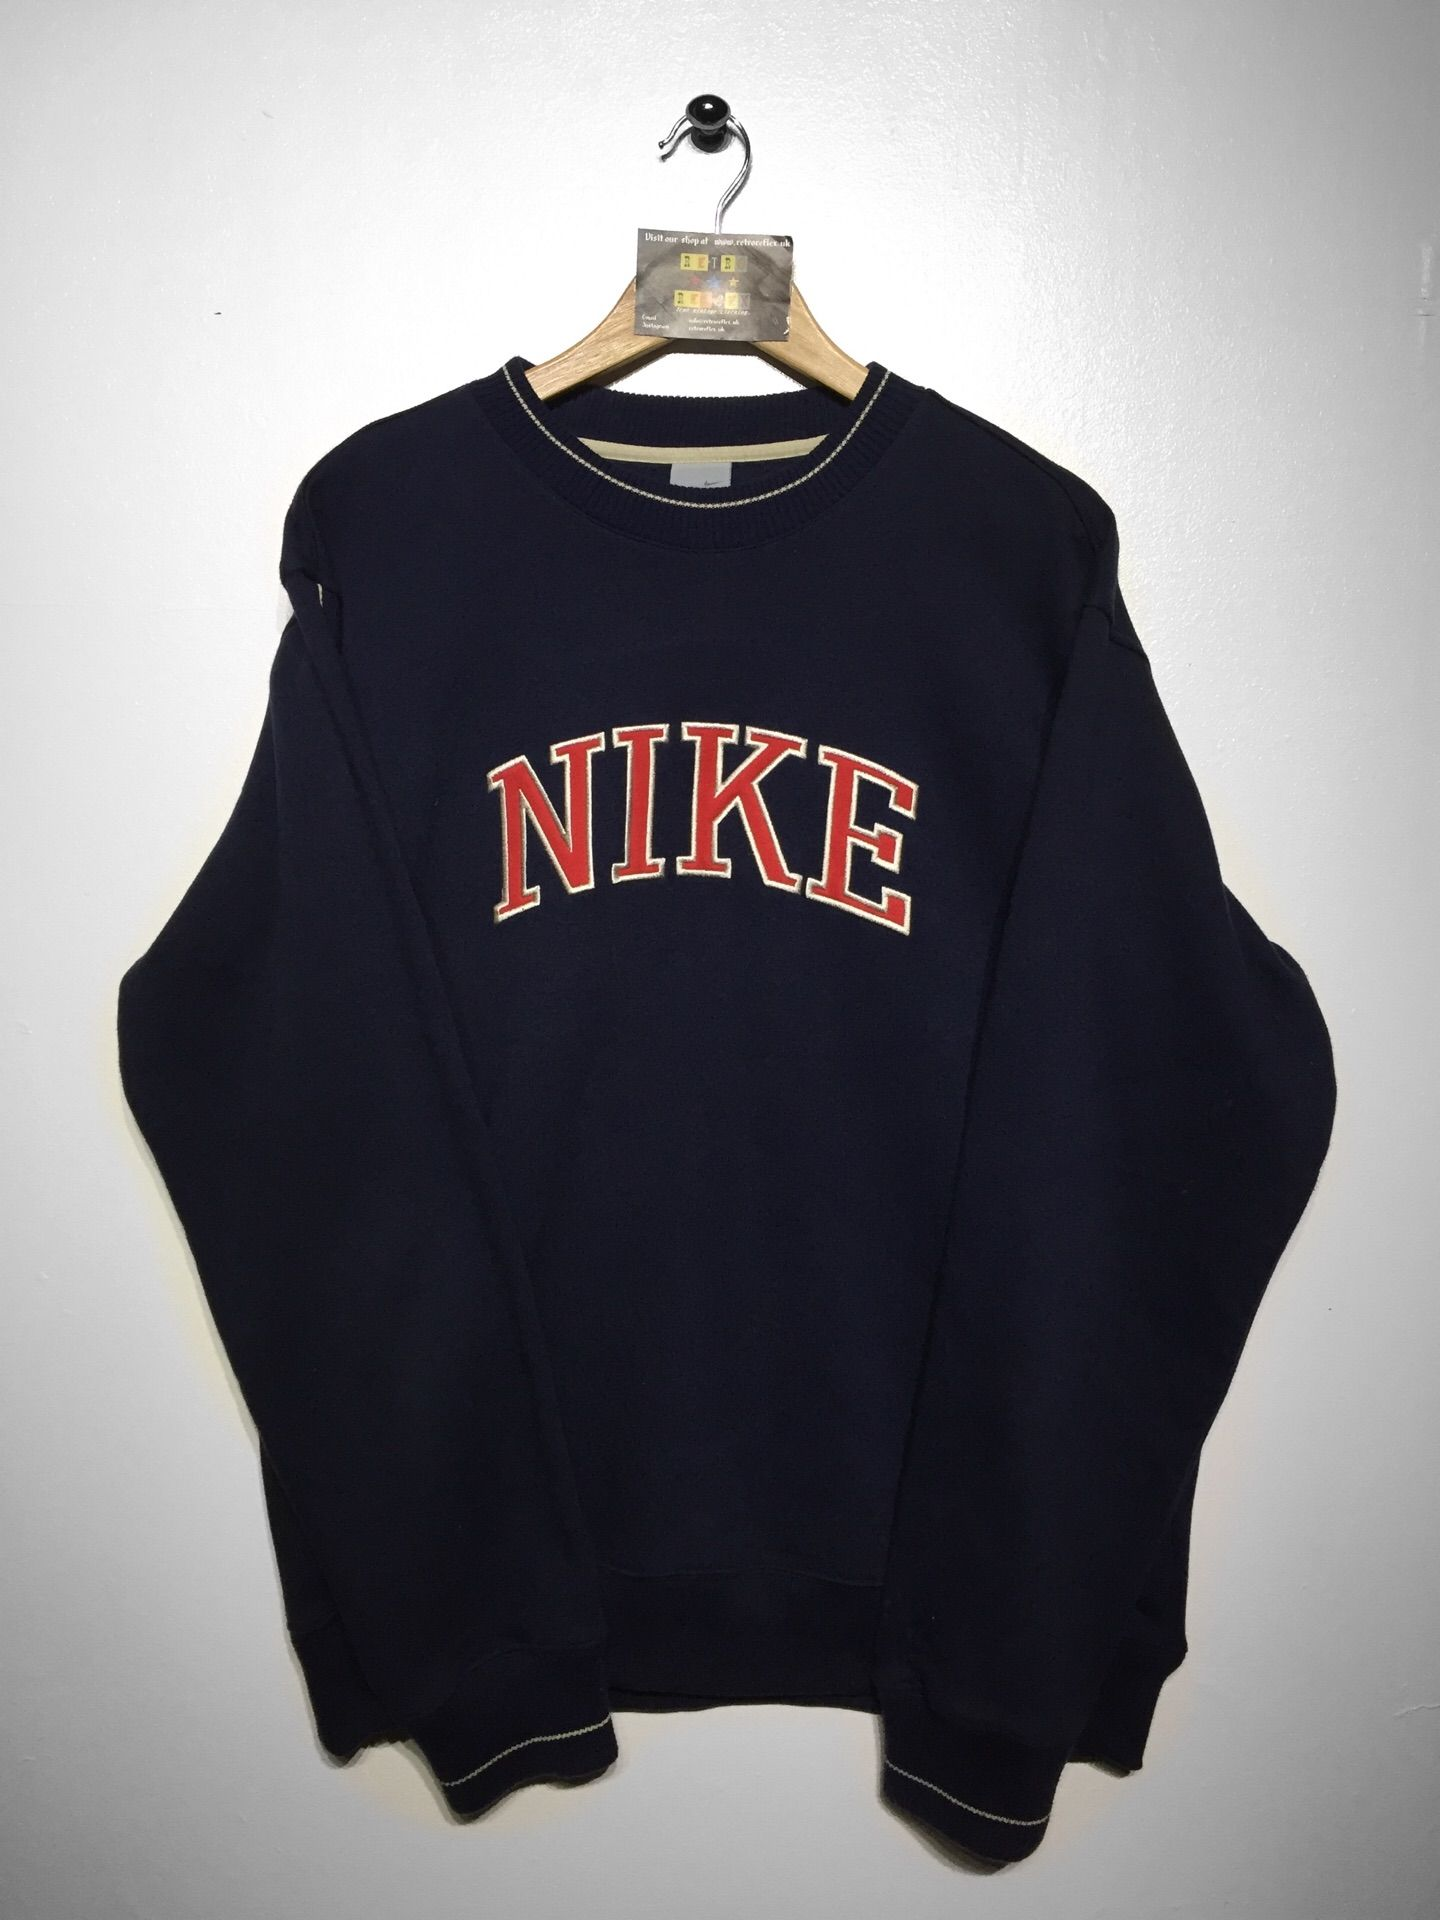 80e9353eb1 Nike sweatshirt size Large(but Fits oversized) £32 Website➡ www ...